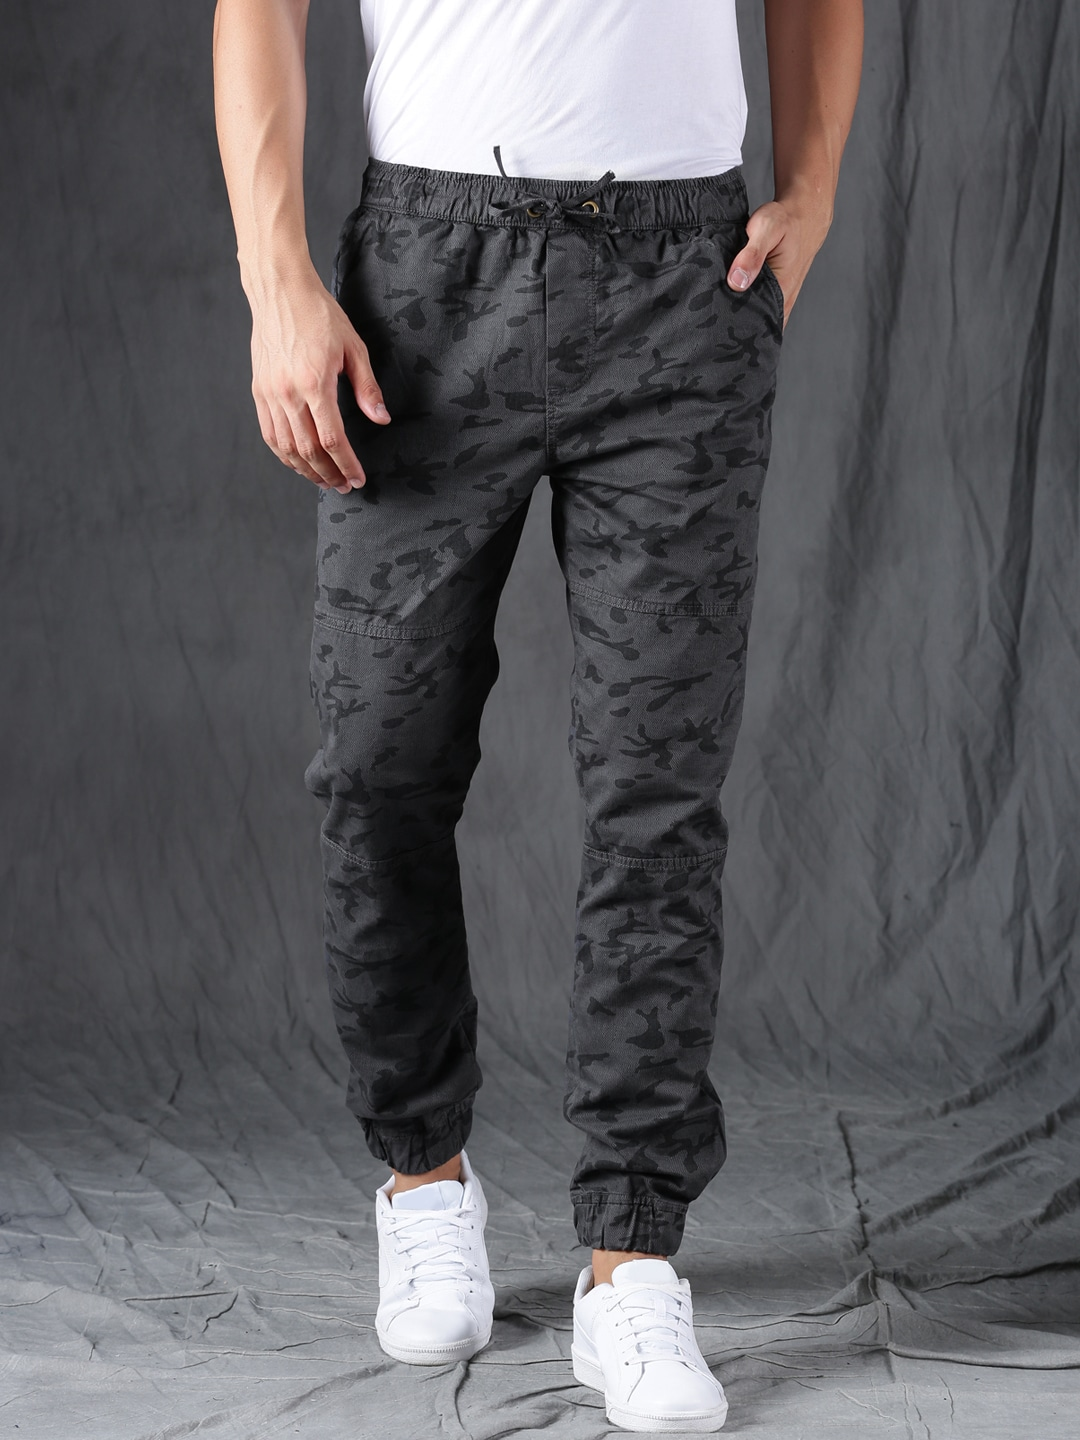 Trousers For Men Buy Mens Pants Online Myntra Pensil Jeans Polos Black Jsk9100 Size 27 38